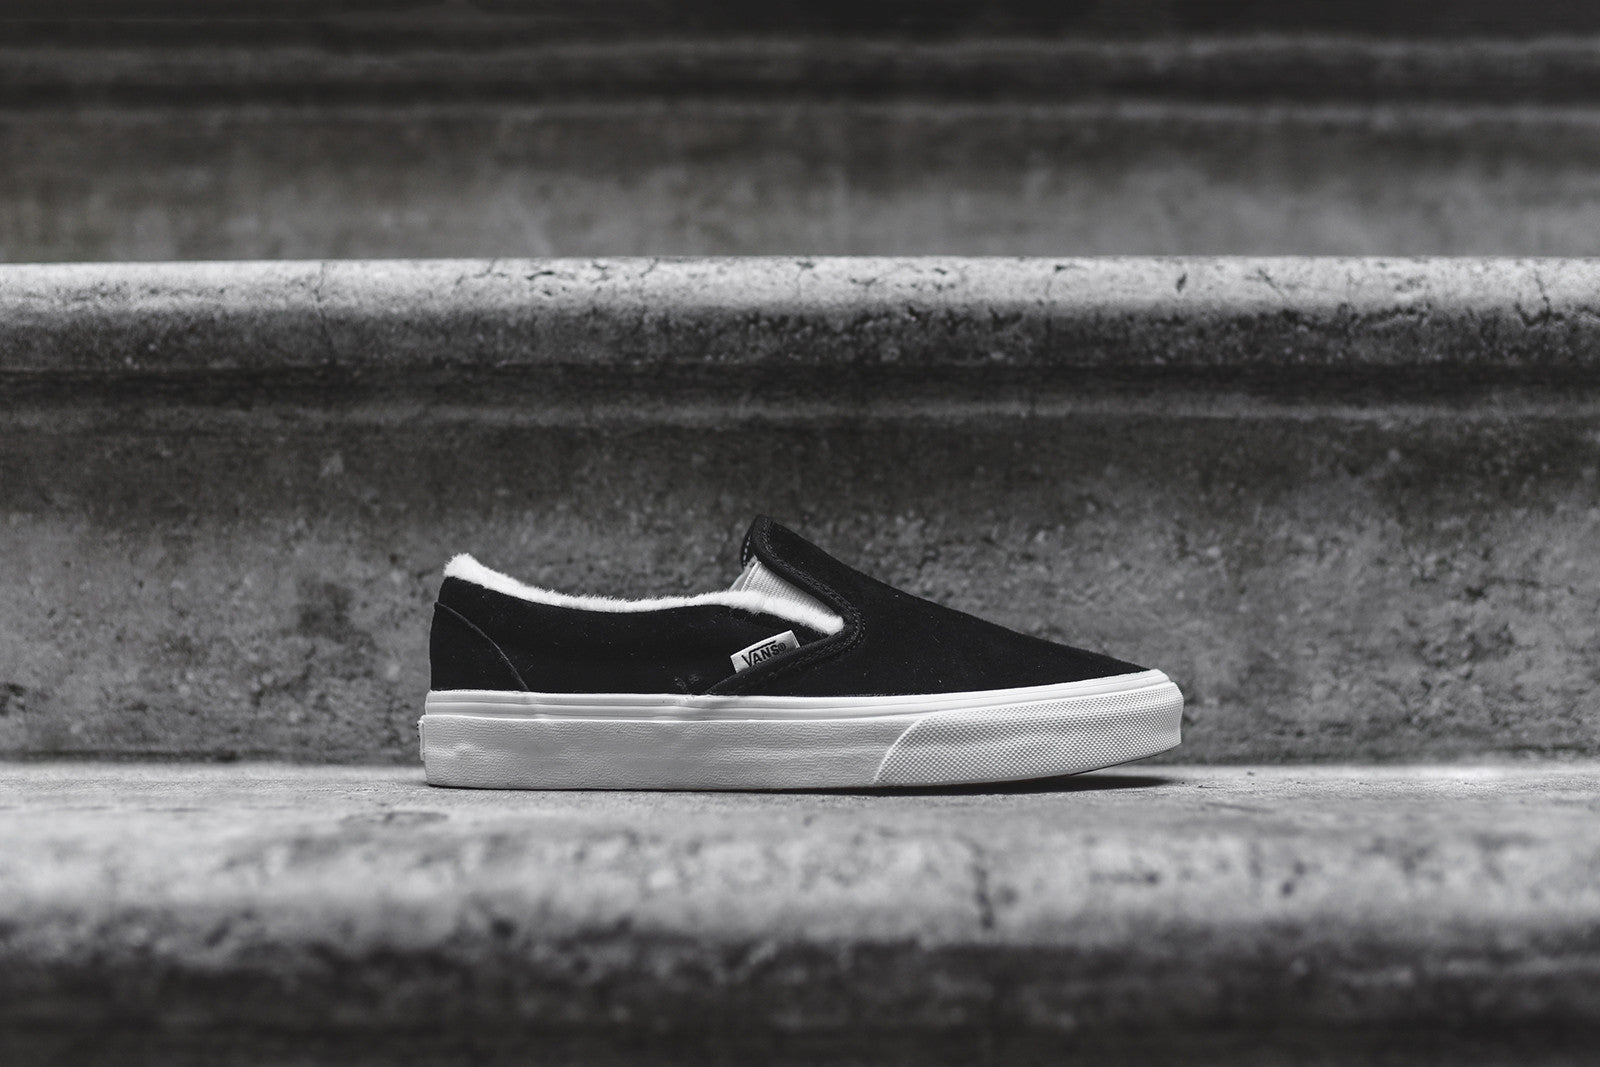 Vans wmns classic slip on black white